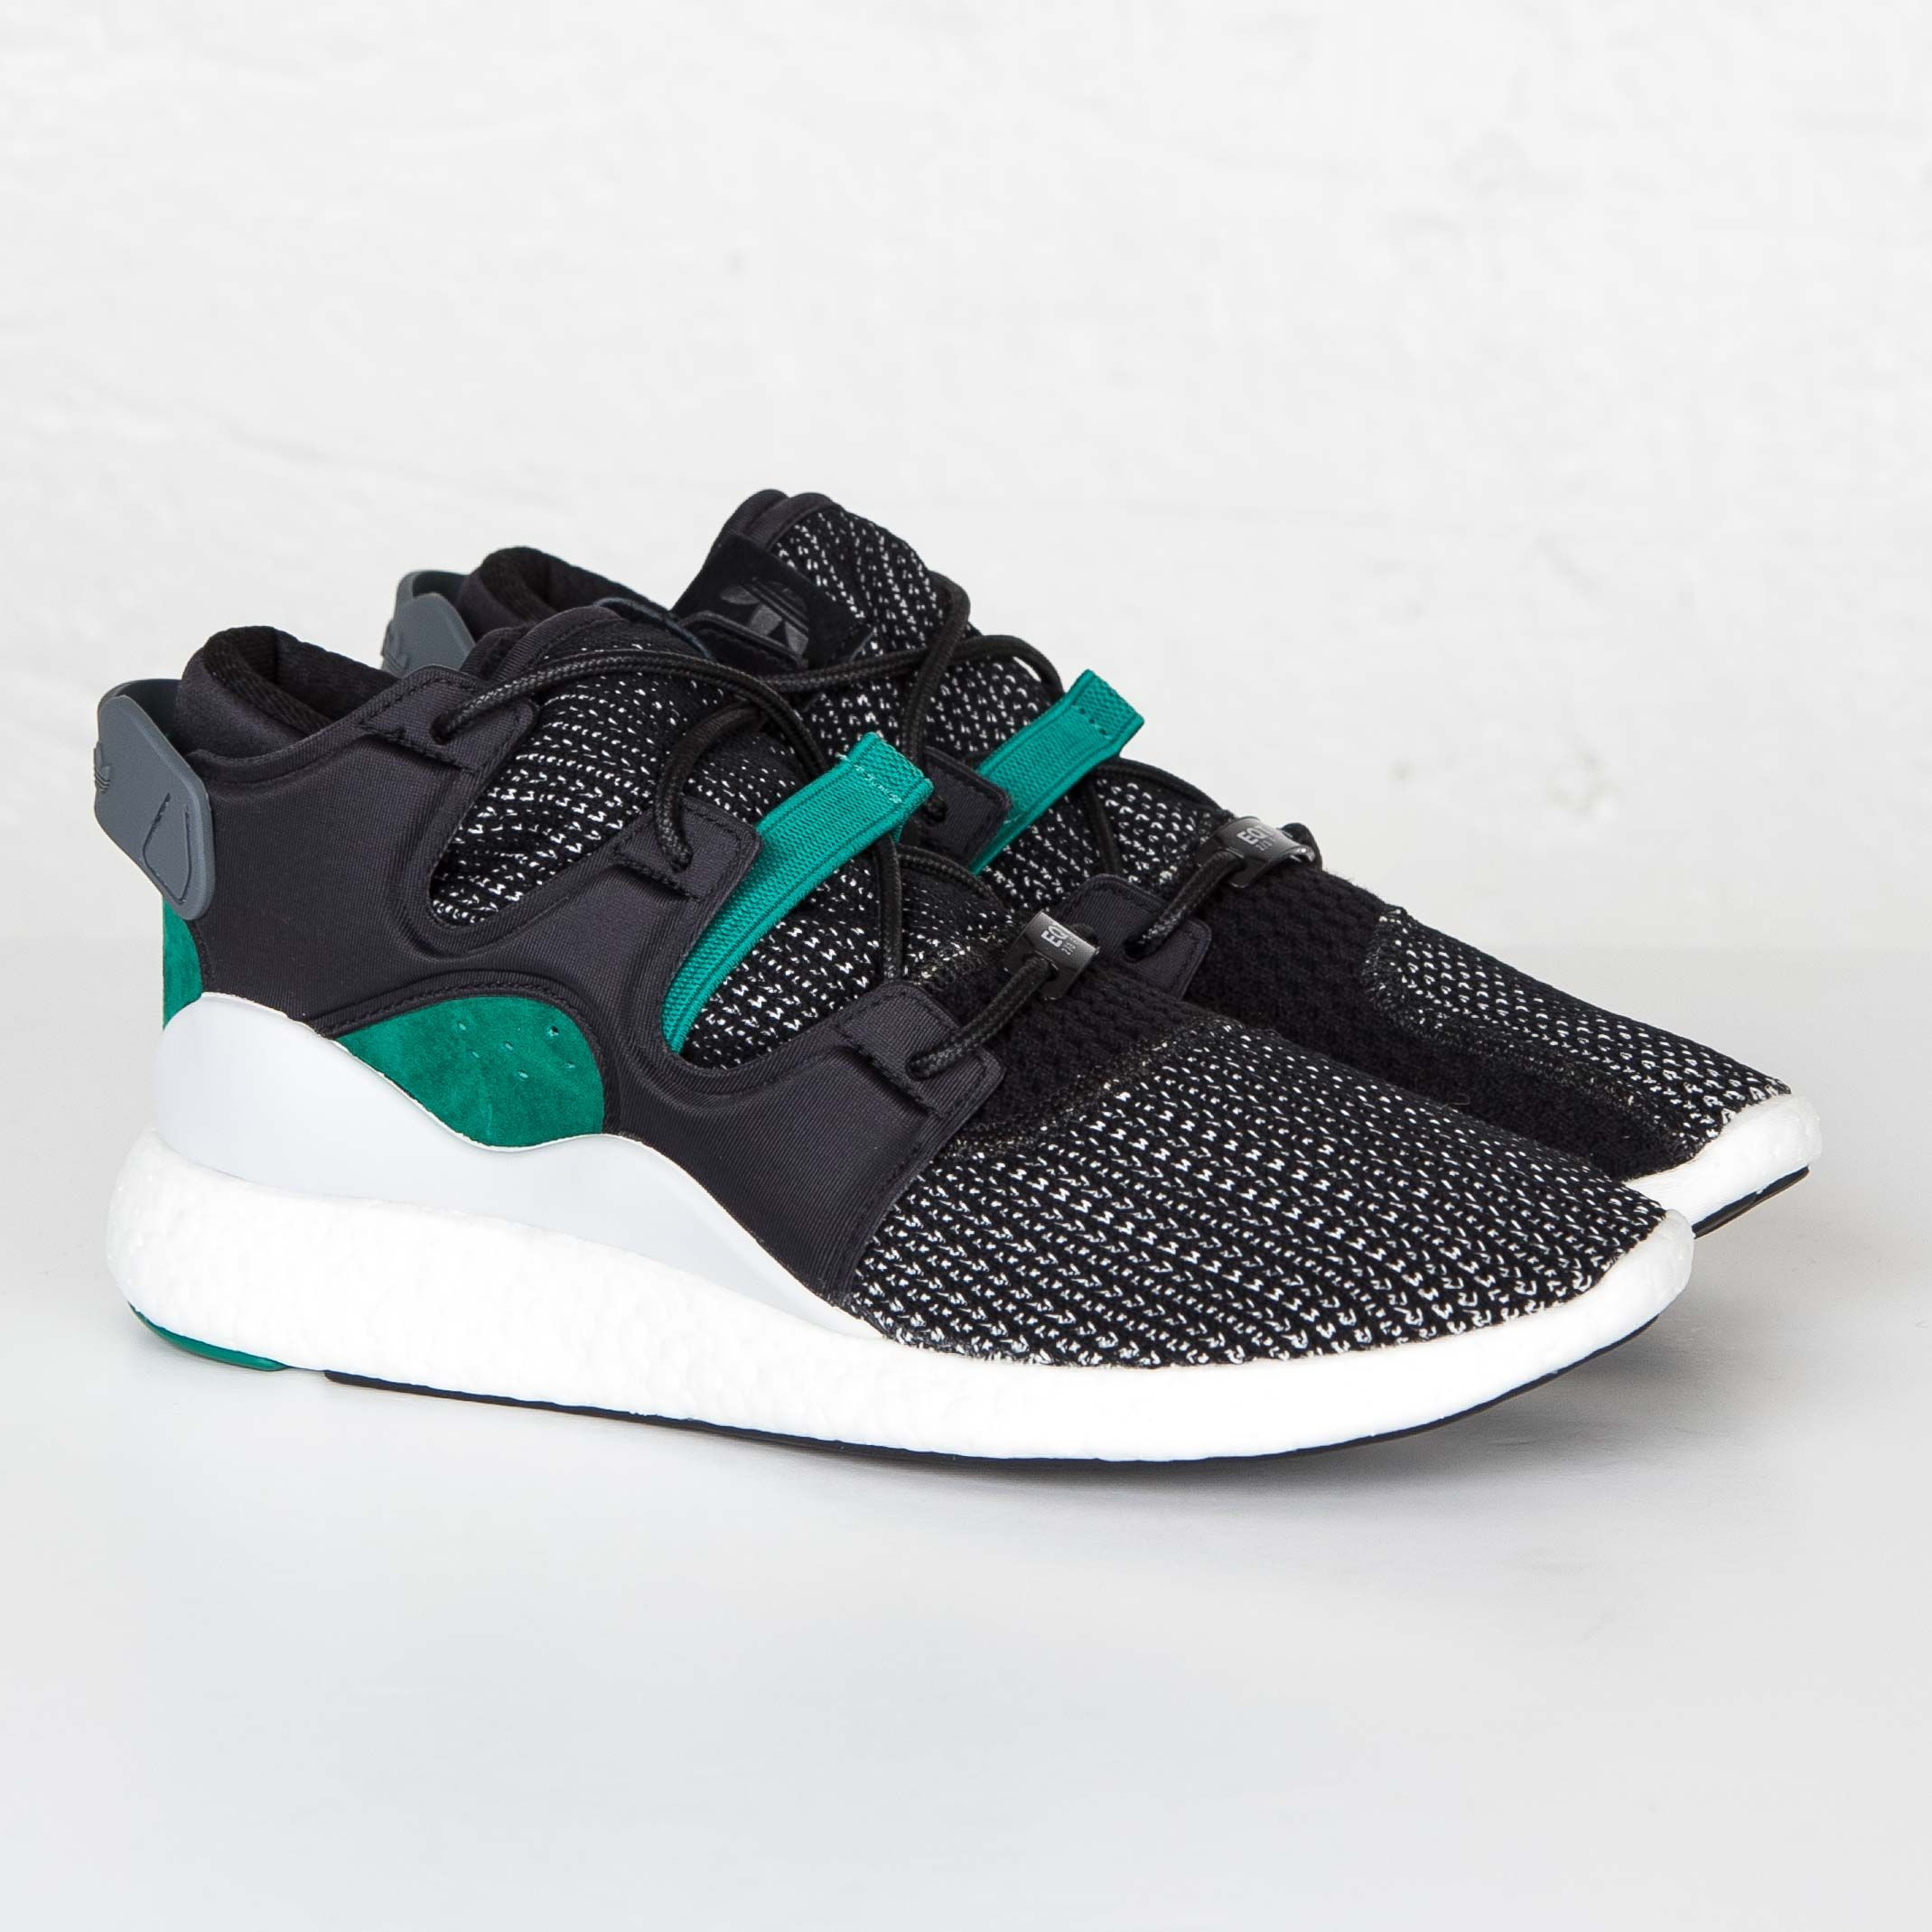 cheap for discount 543c9 bf91c adidas EQT 2 3 F15 OG